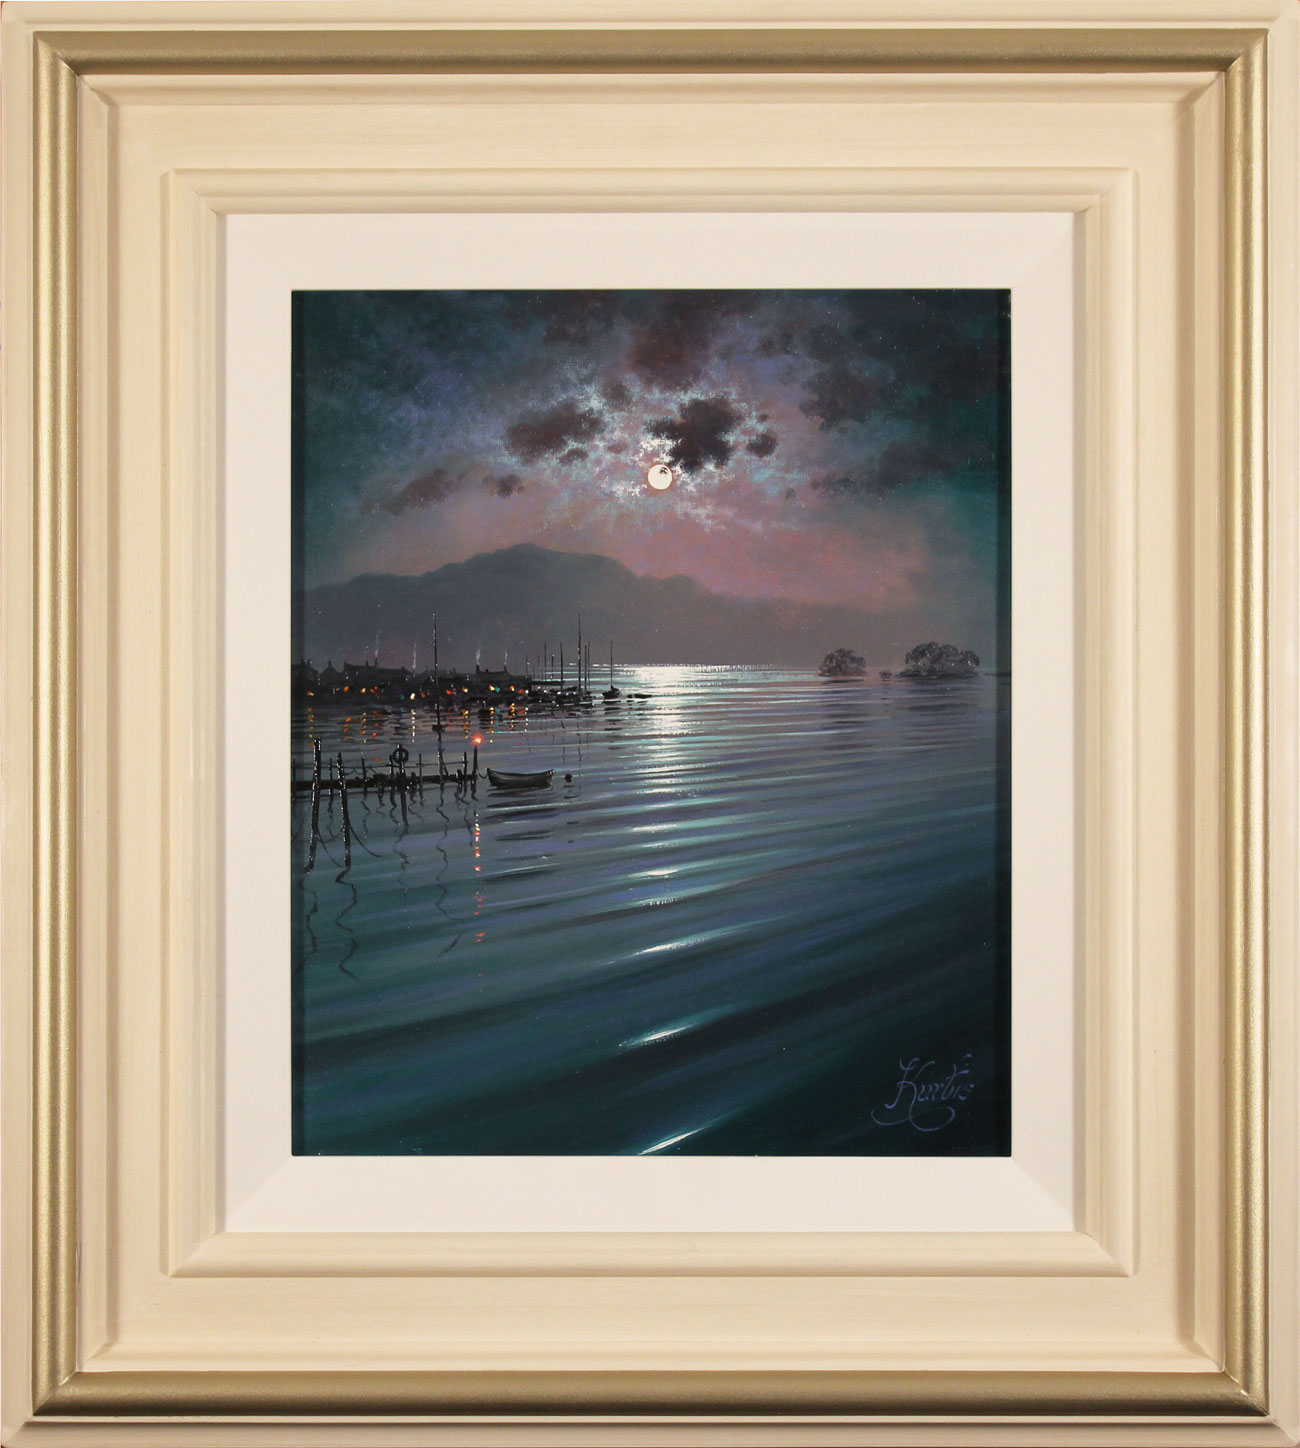 Andrew Grant Kurtis, Original oil painting on canvas, Nocturne Relfections, Lakeland. Click to enlarge